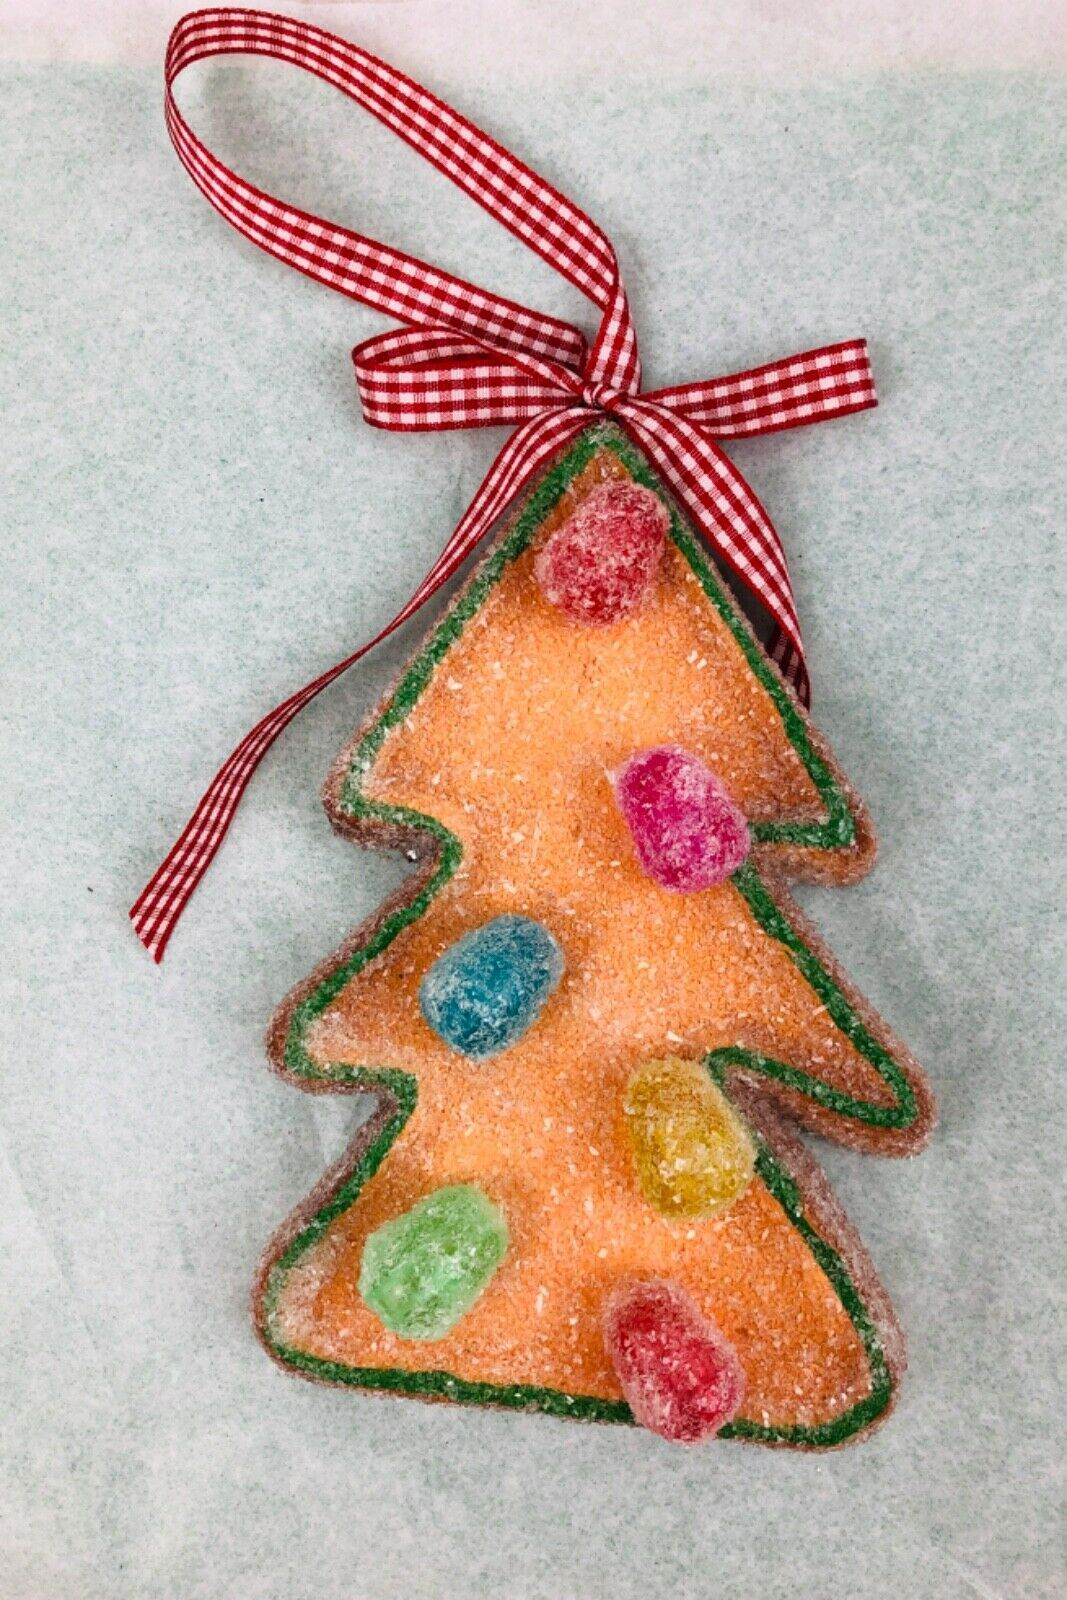 Details about Gingerbread Tree Gumdrop Ornaments Christmas ...